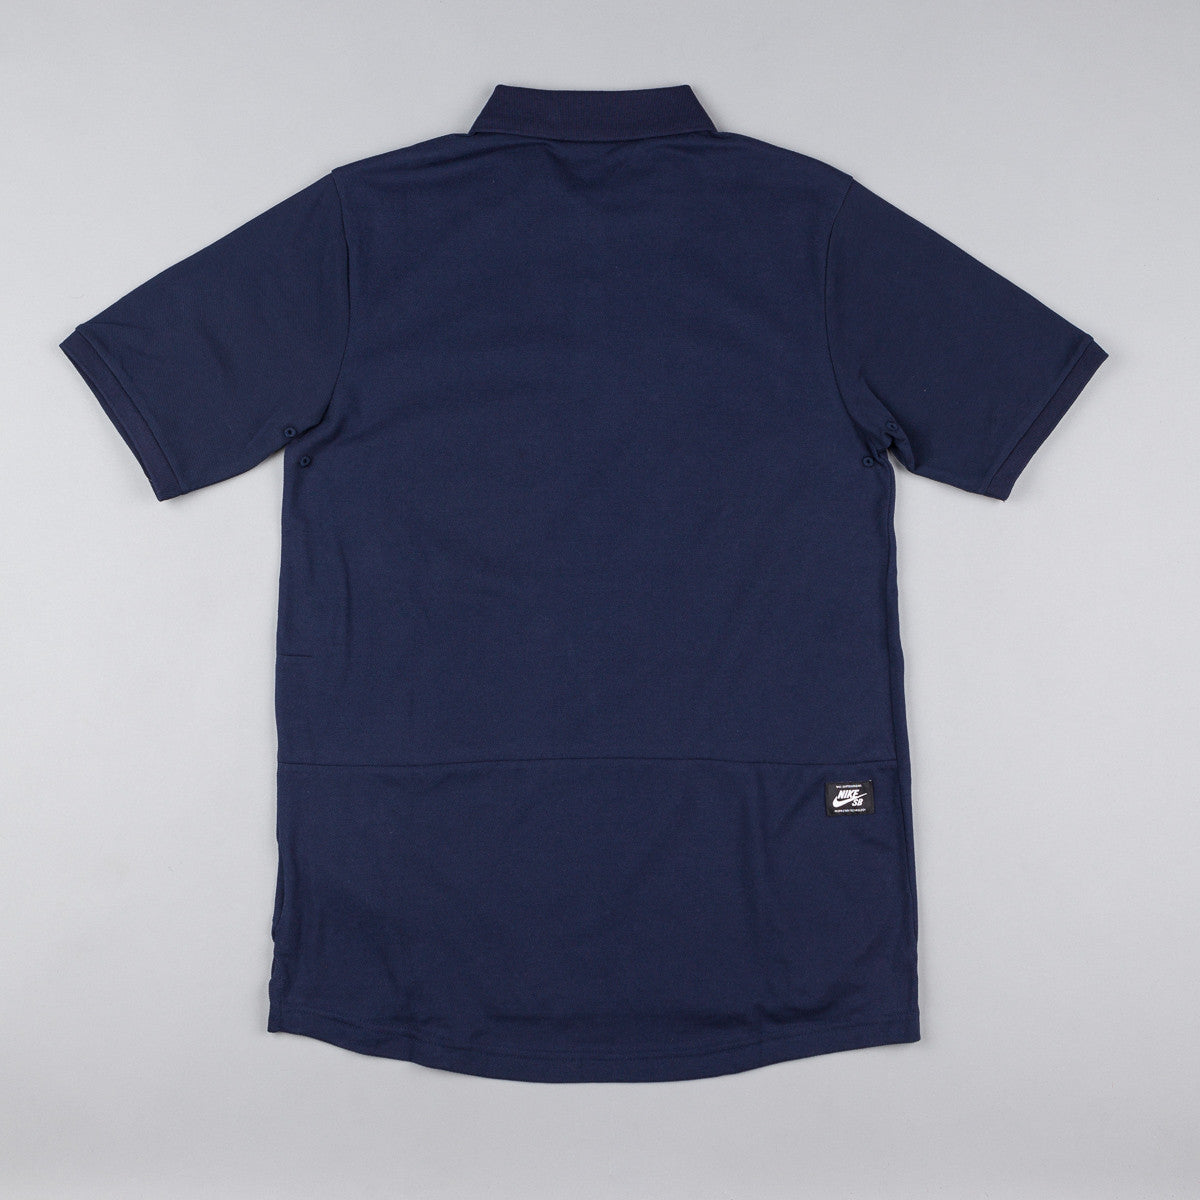 Nike SB Dri-Fit Pique Polo Shirt - Obsidian / White